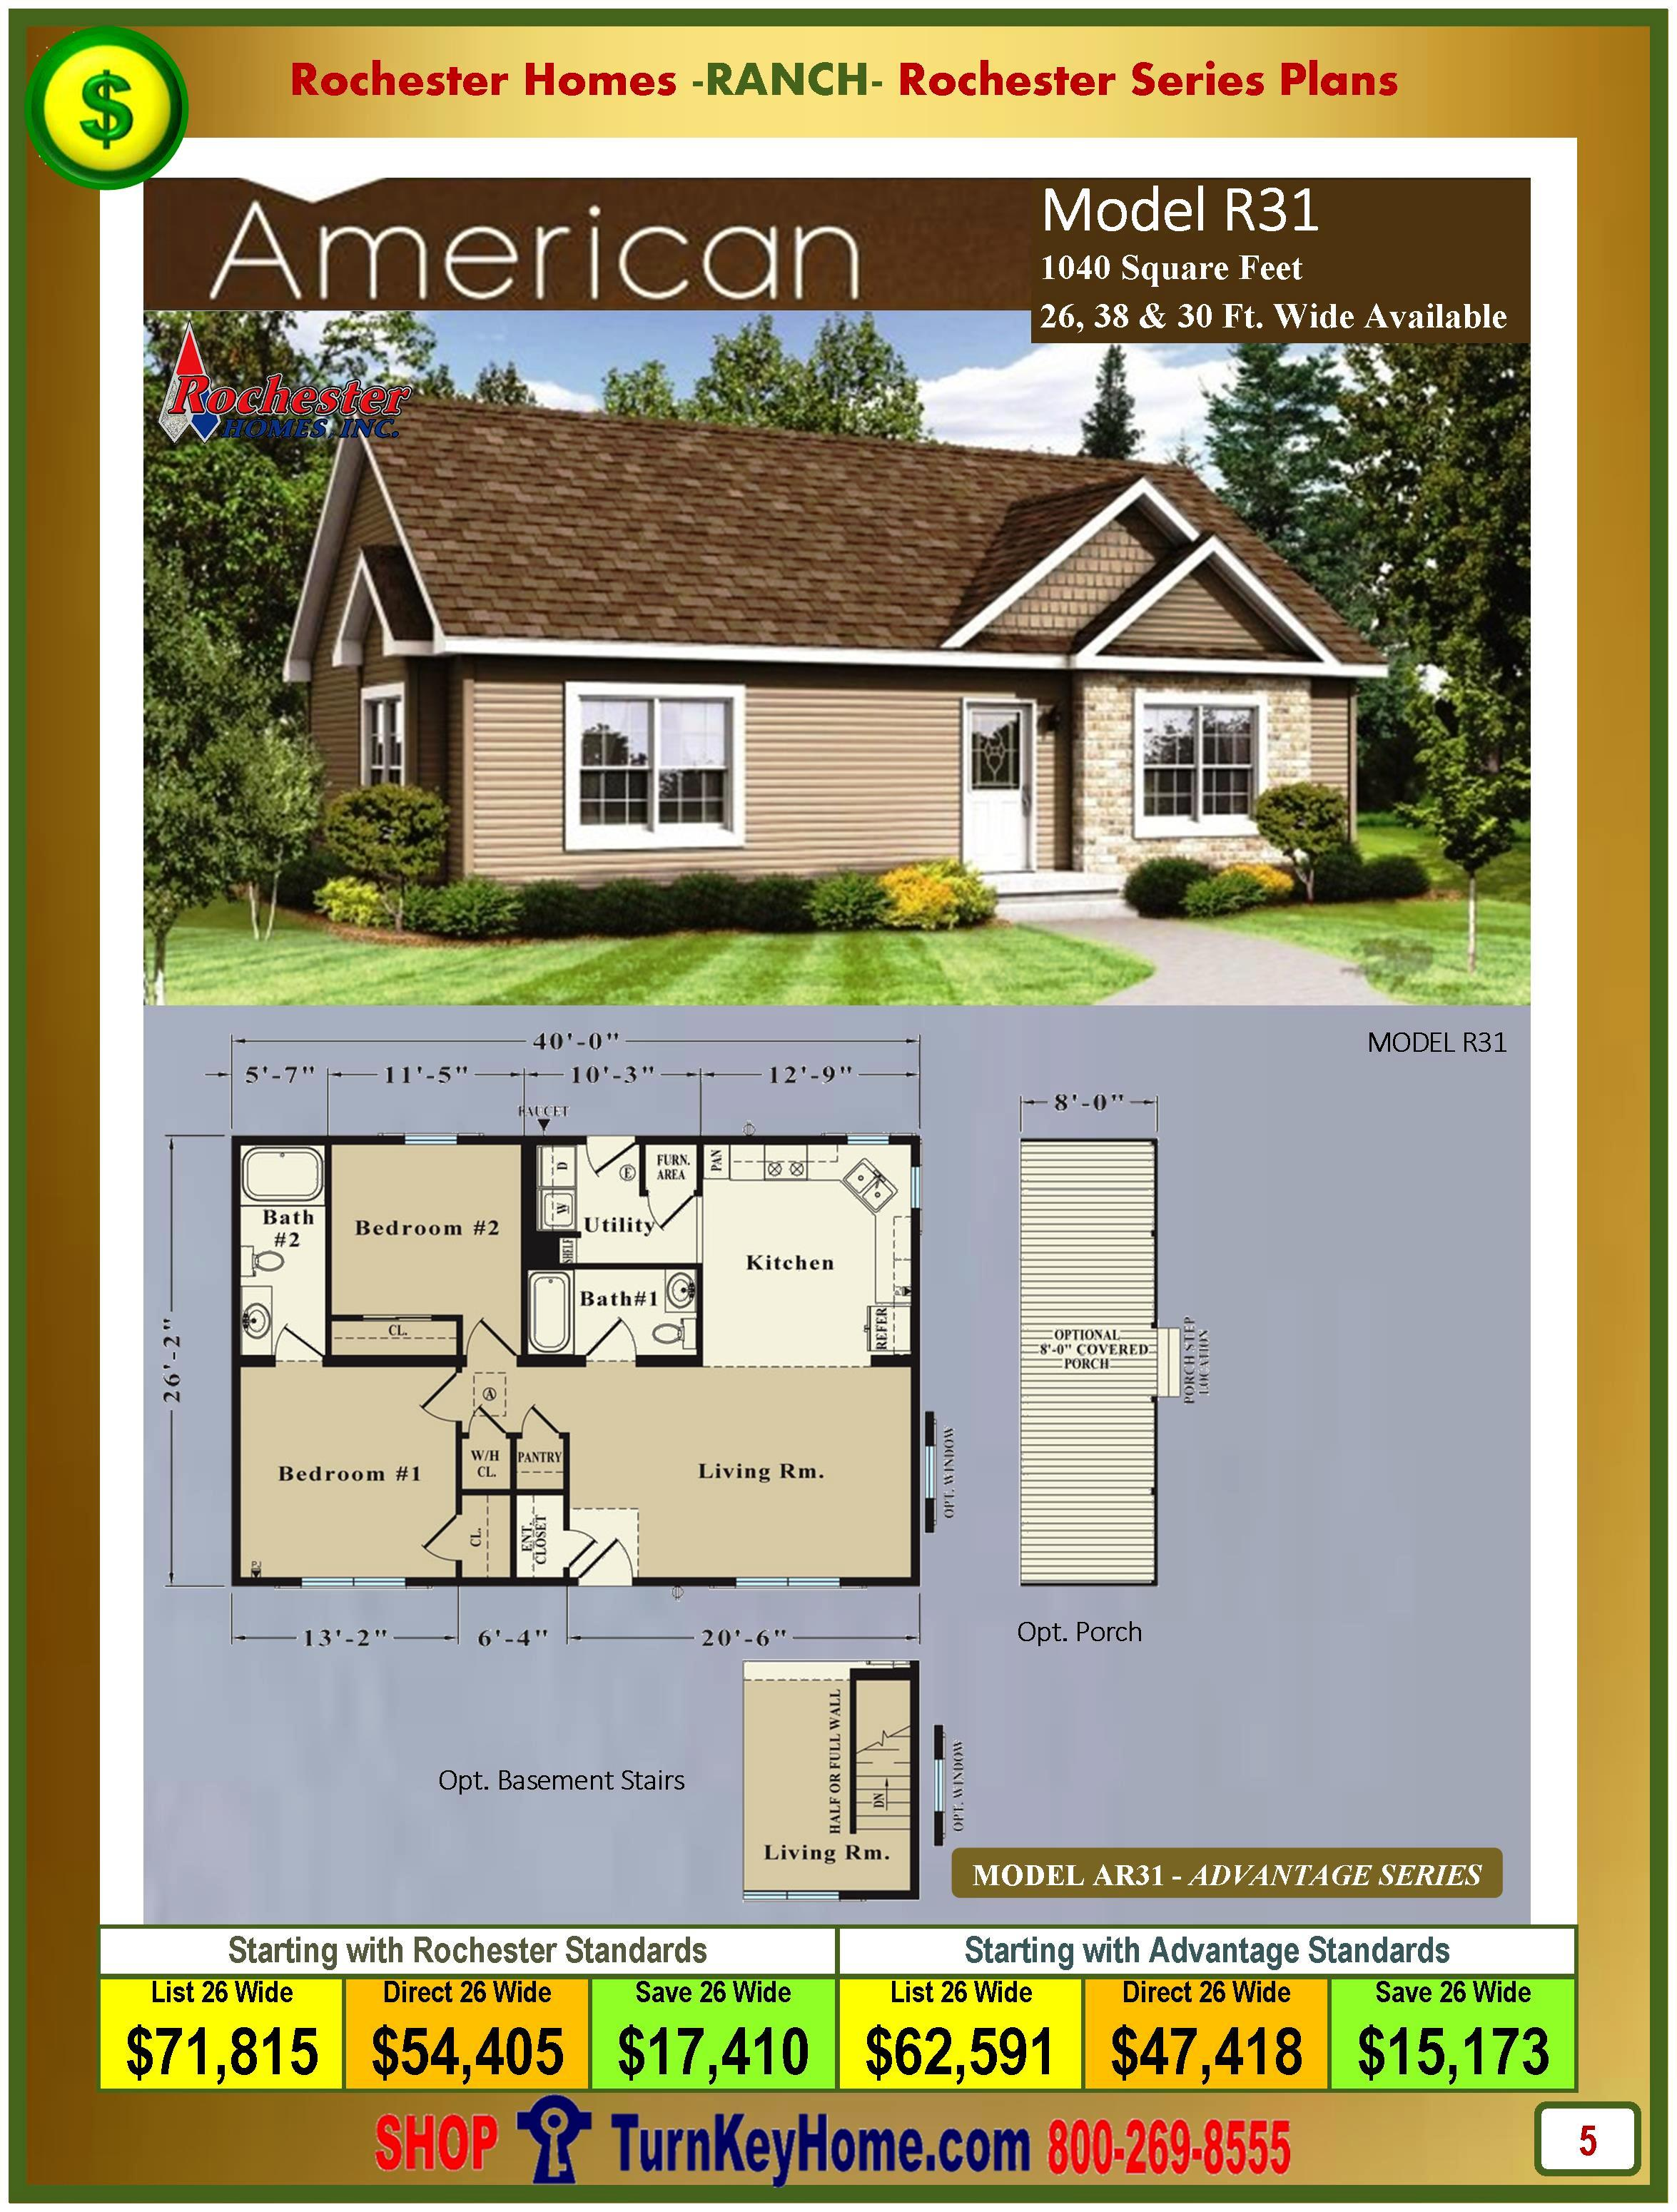 american rochester modular home ranch model r31 plan price